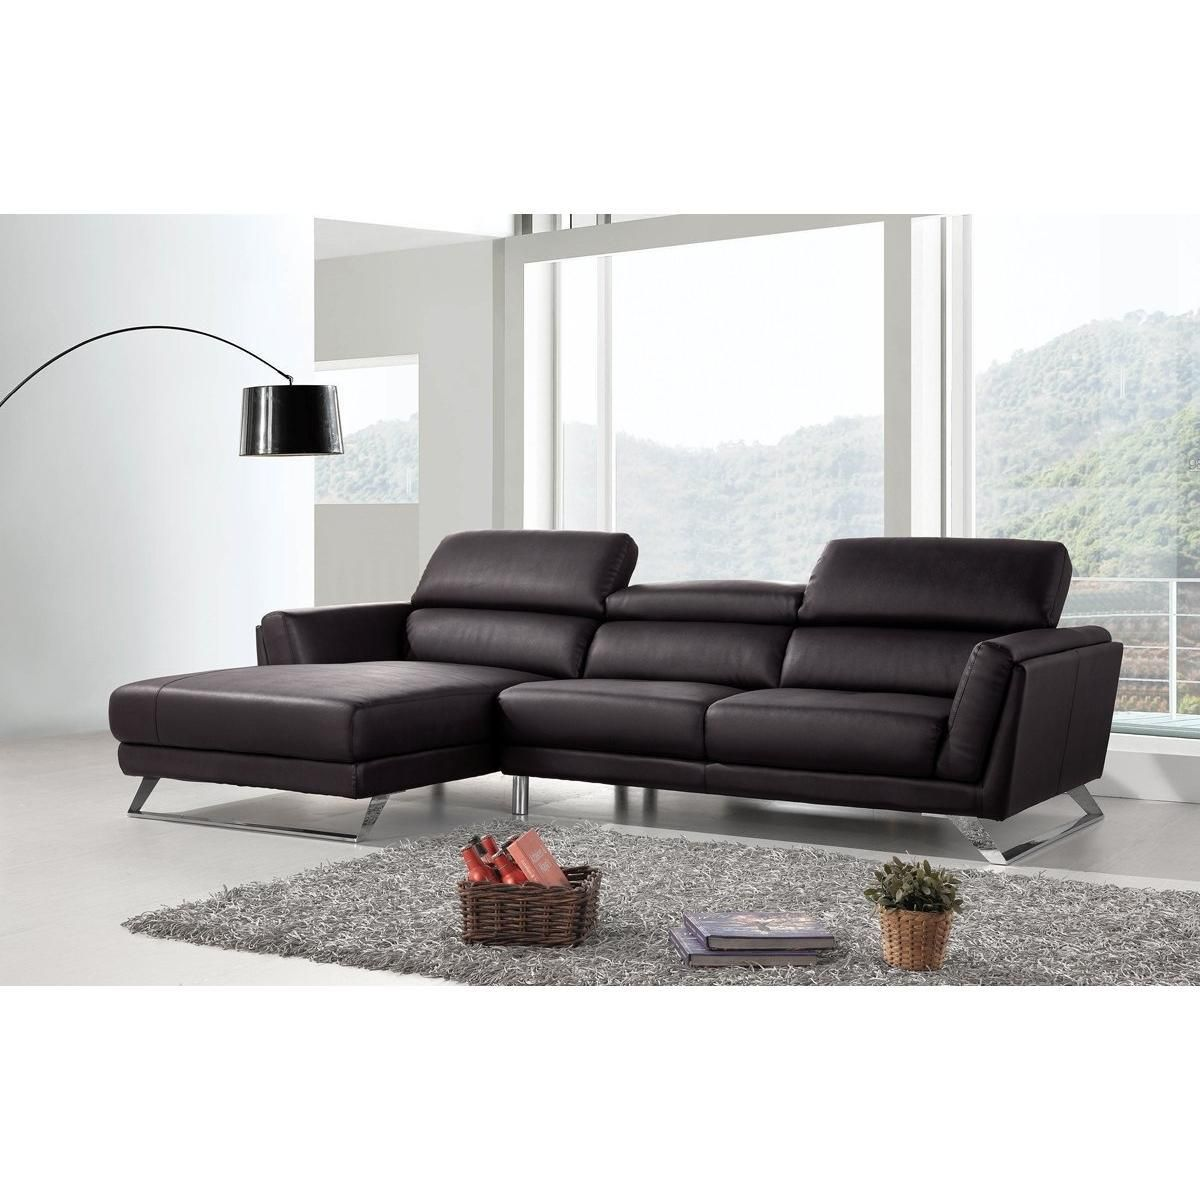 Divani Casa Doss Modern Black Eco Leather Sectional Sofa Leather